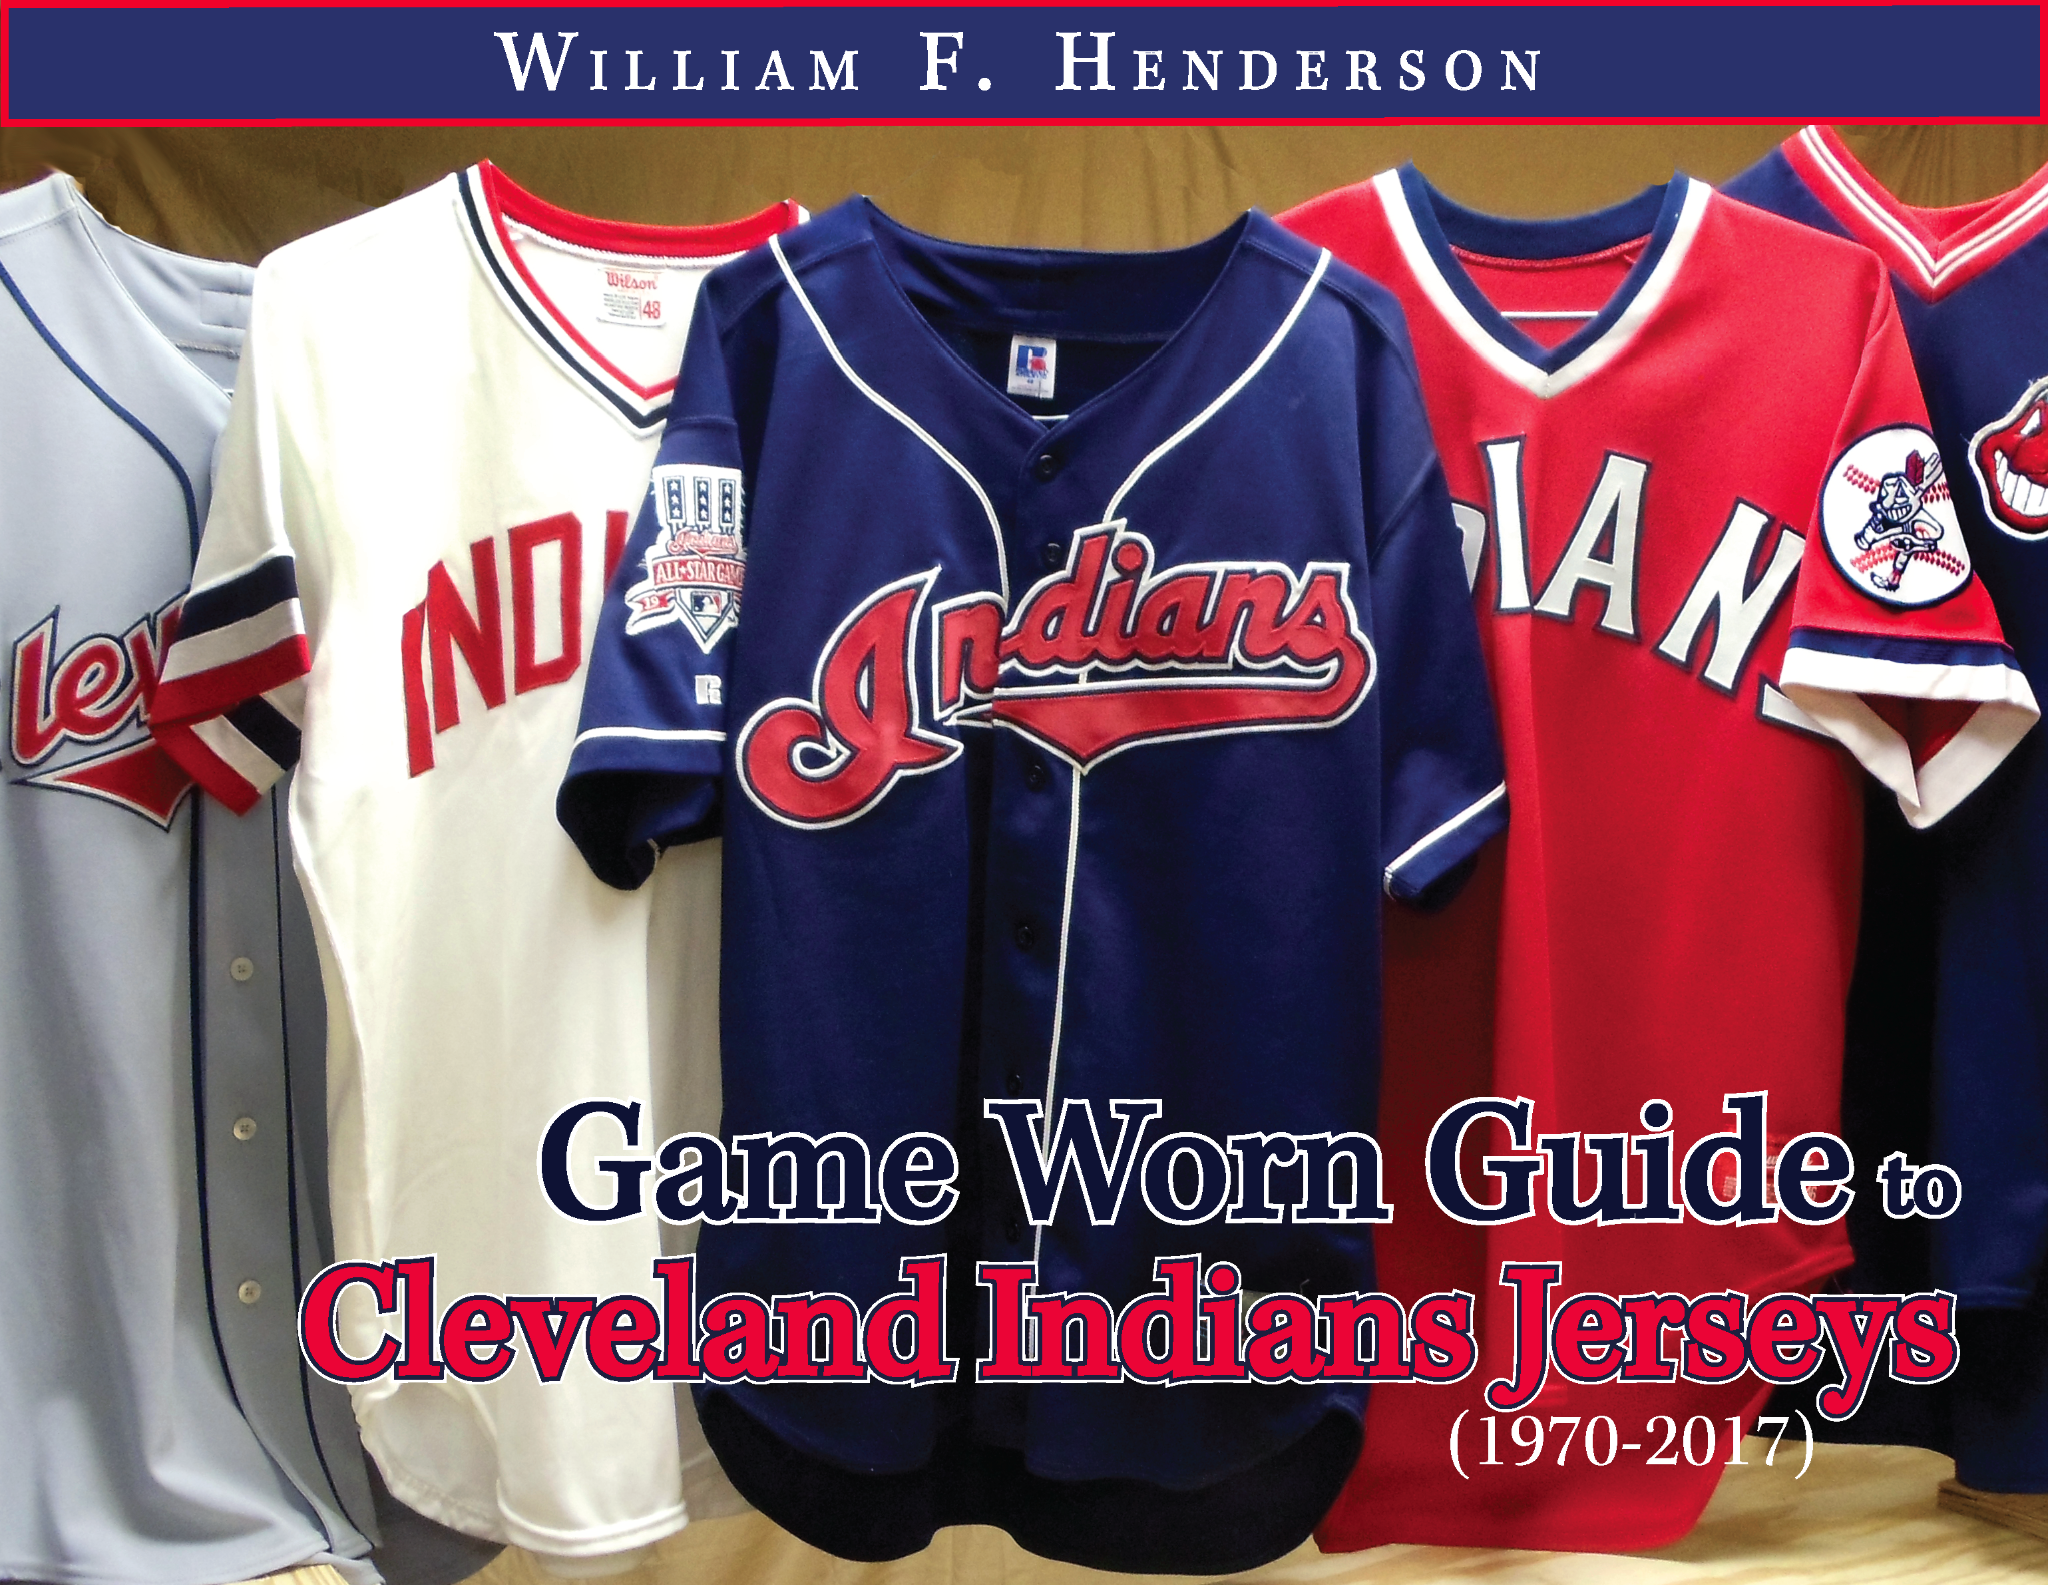 Game Worn Guide to Cleveland Indians Jerseys (1970-2017)